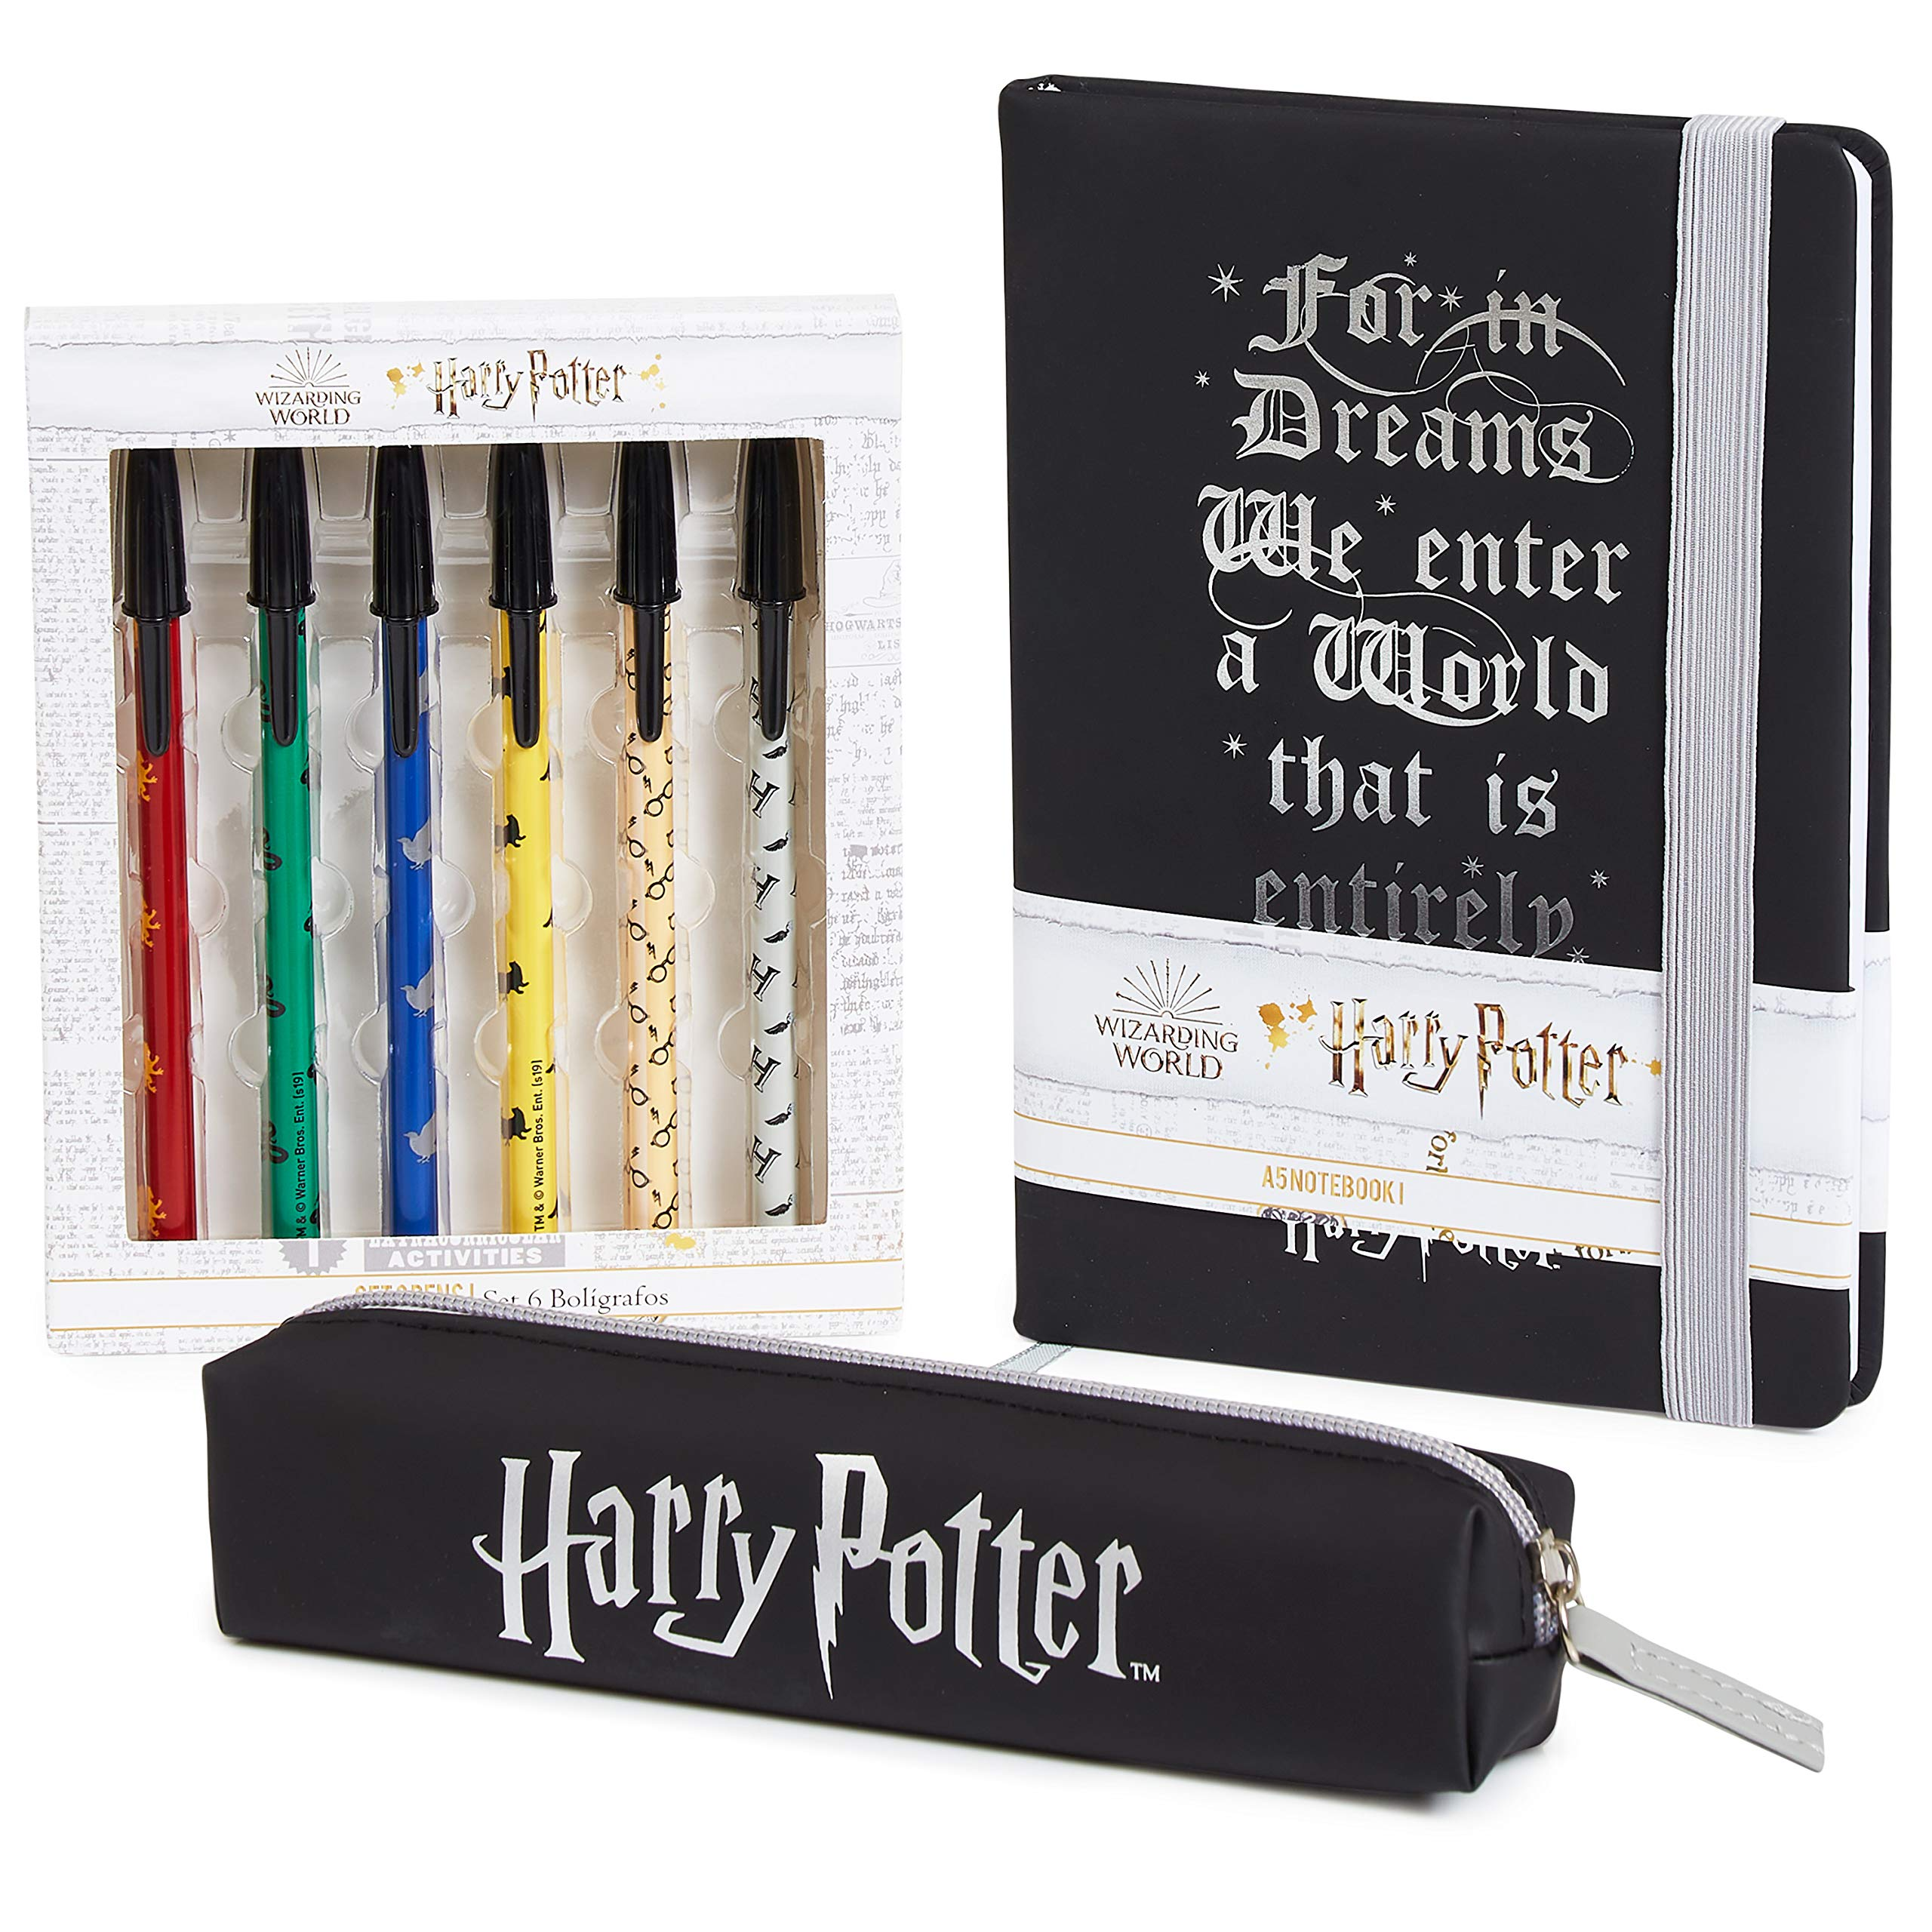 Harry Potter Stationery Set with Notebook A5, Pencil Case and 6 Pens, Cute Writing Sets for Girls and Boys, Official Hogwarts Wizarding World School Supplies, Gift Idea for Kids and Teenagers